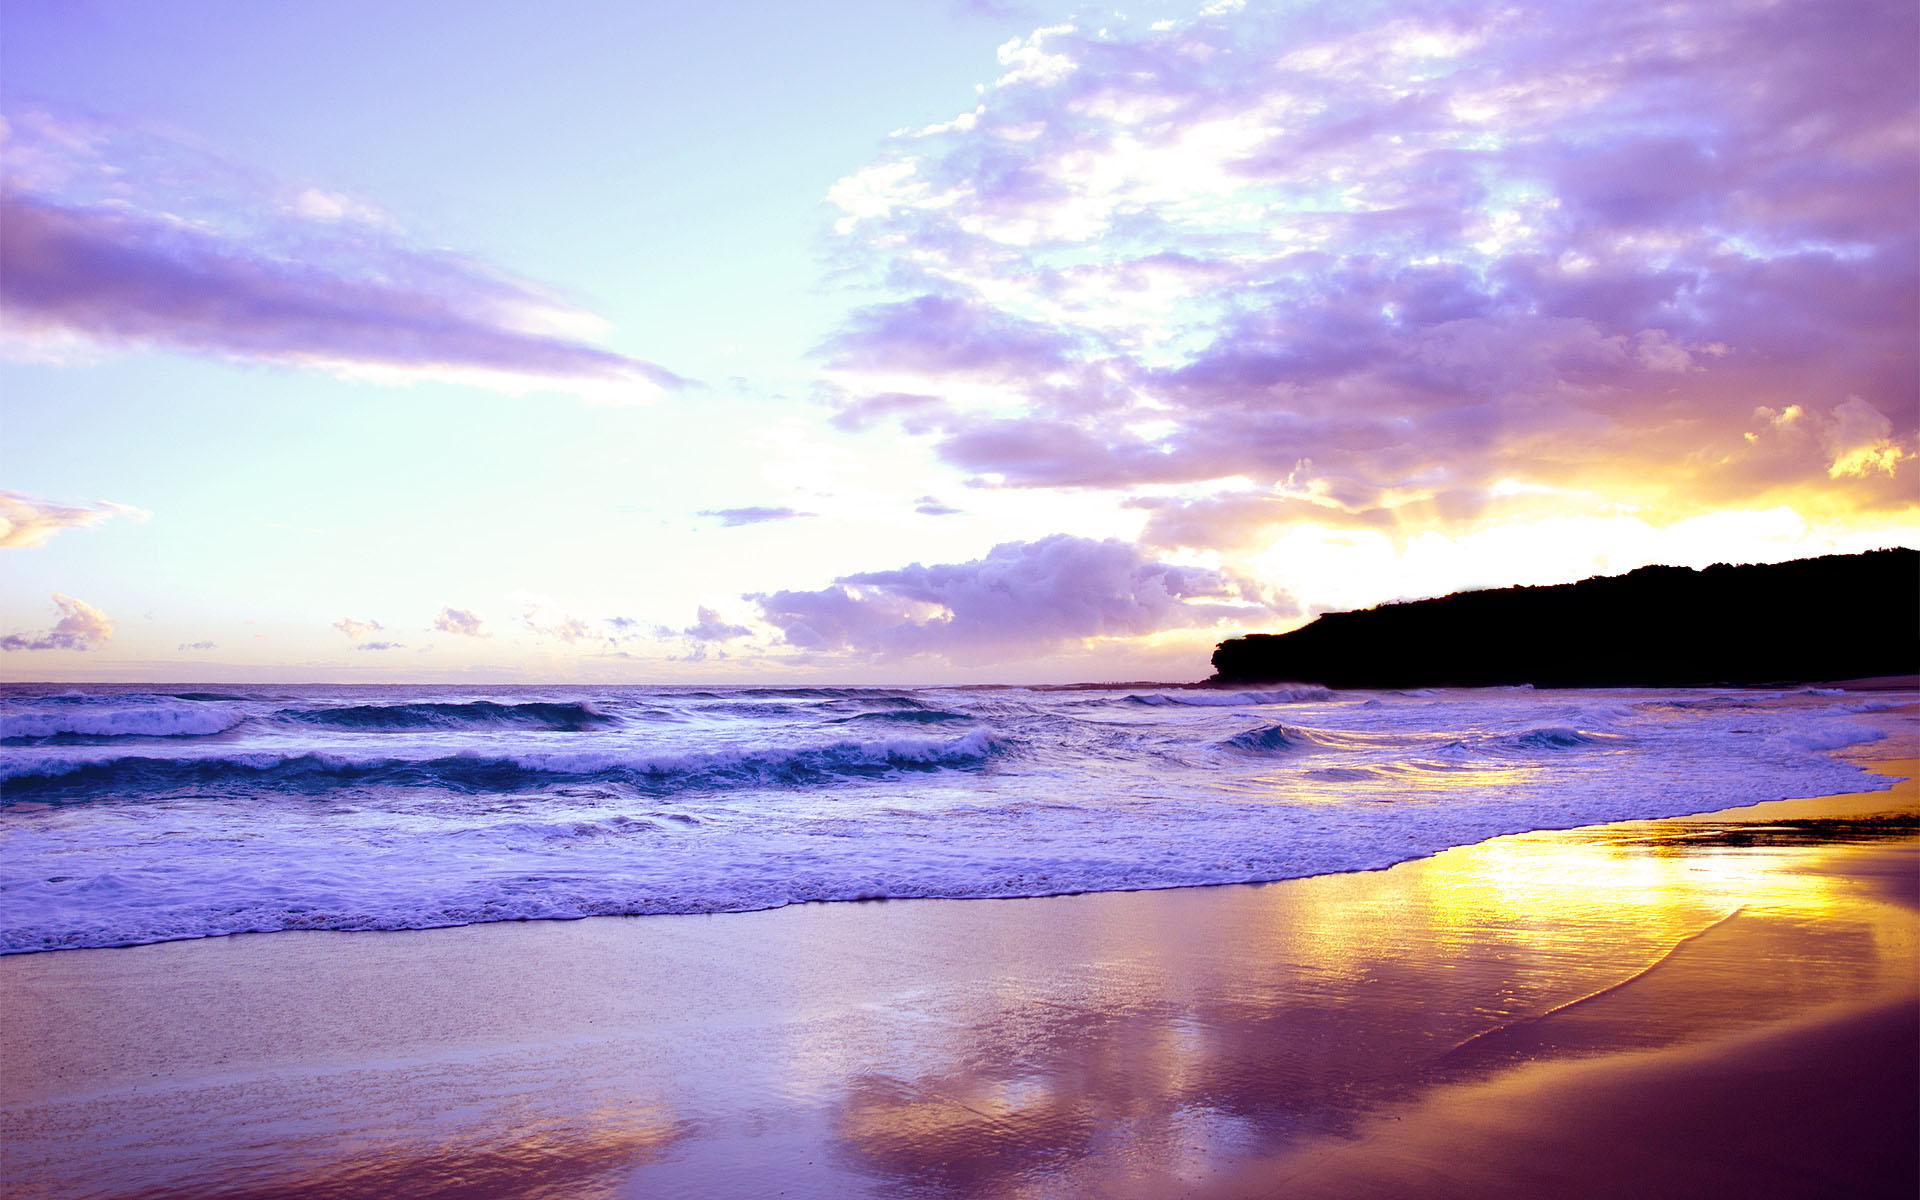 Beach Sunset Backgrounds Tumblr: Sunset Wallpapers Beach Purple - HD Desktop Wallpapers